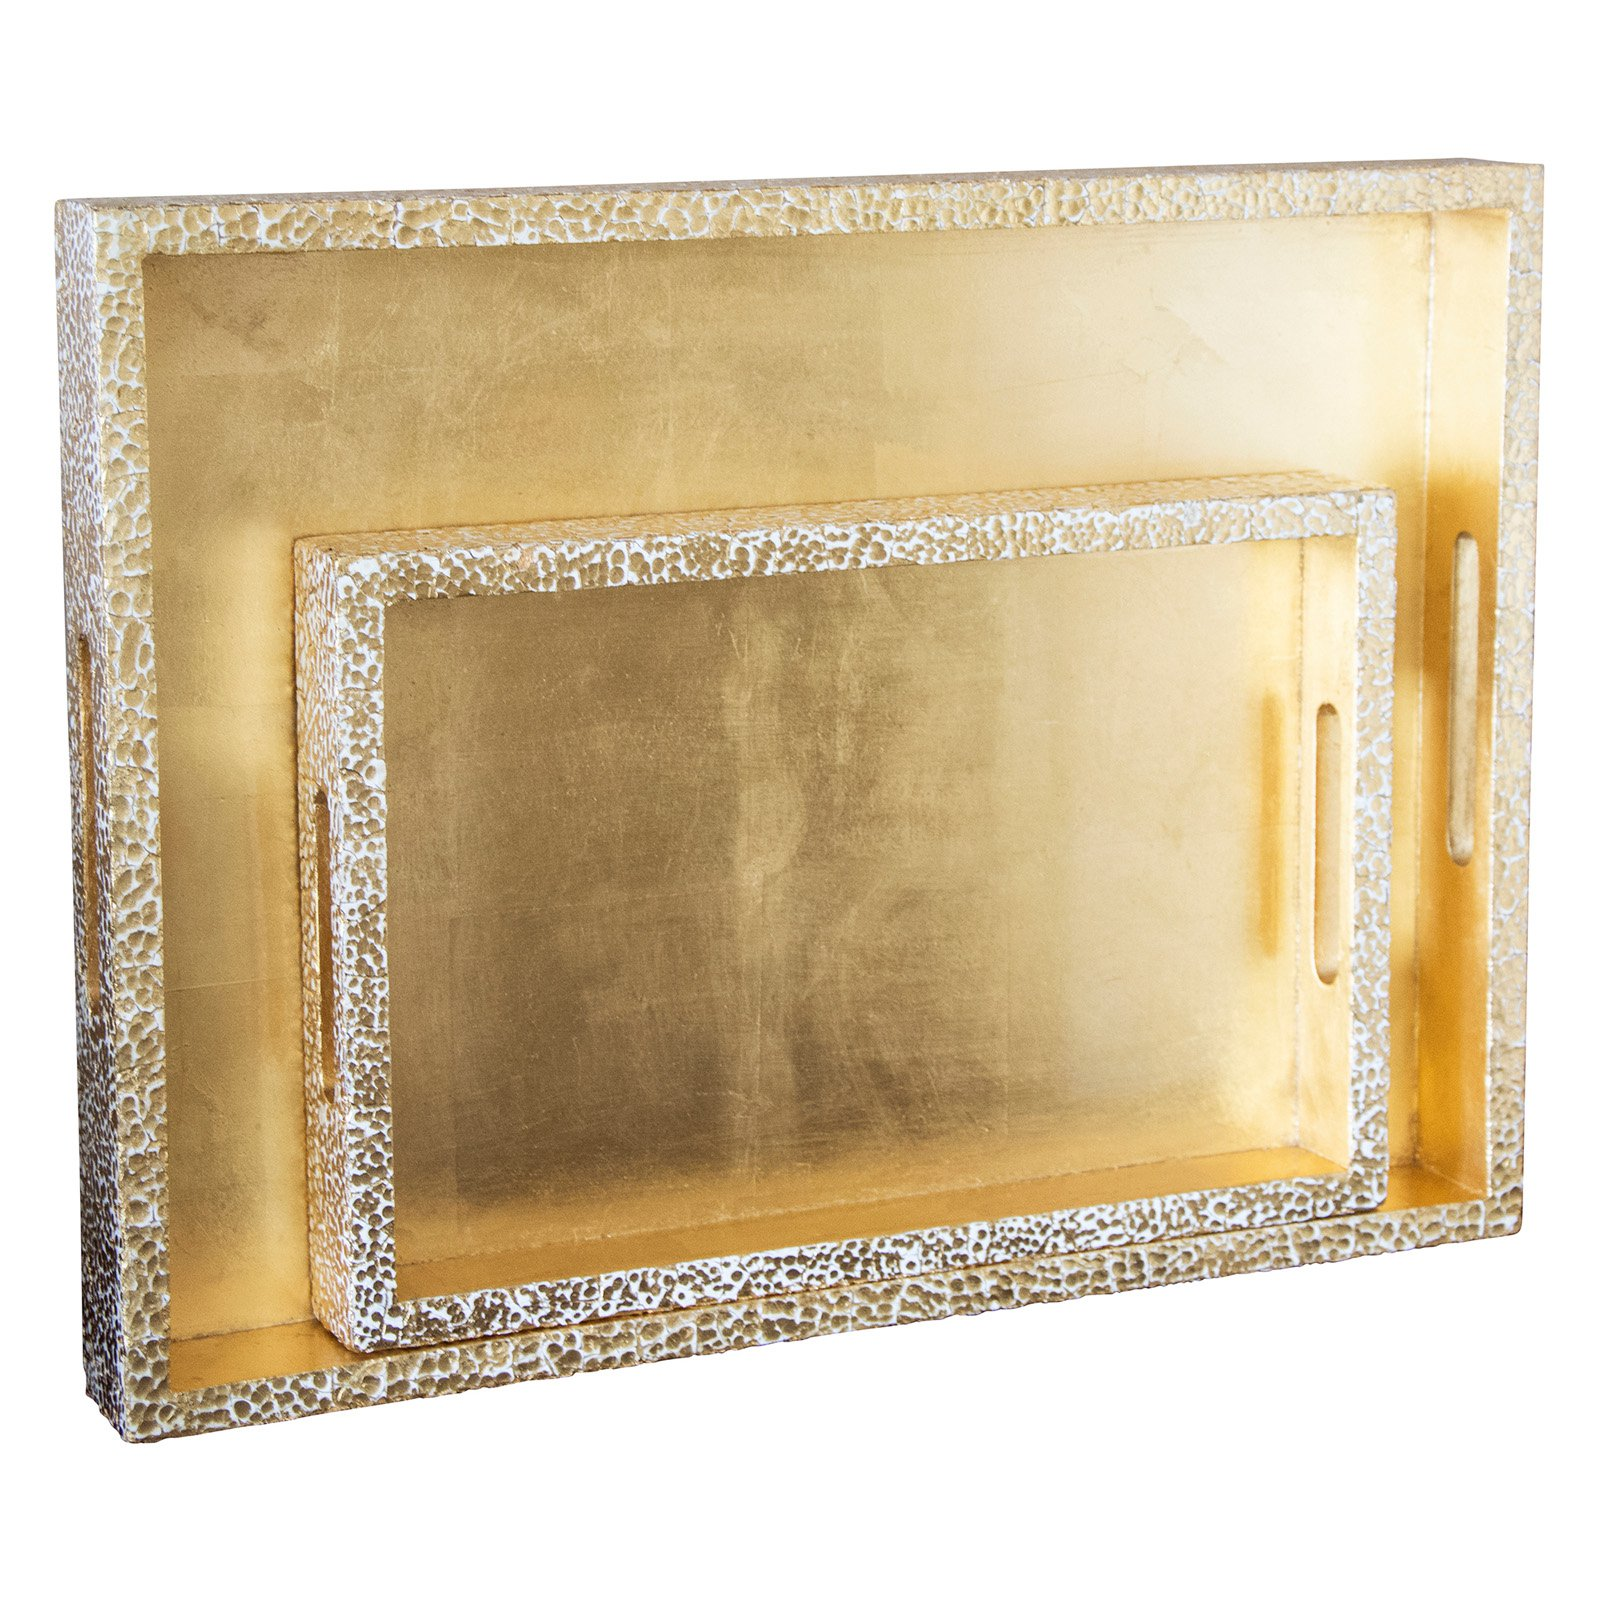 Couture Lamps Atwater Rectangular Trays - Set of 2